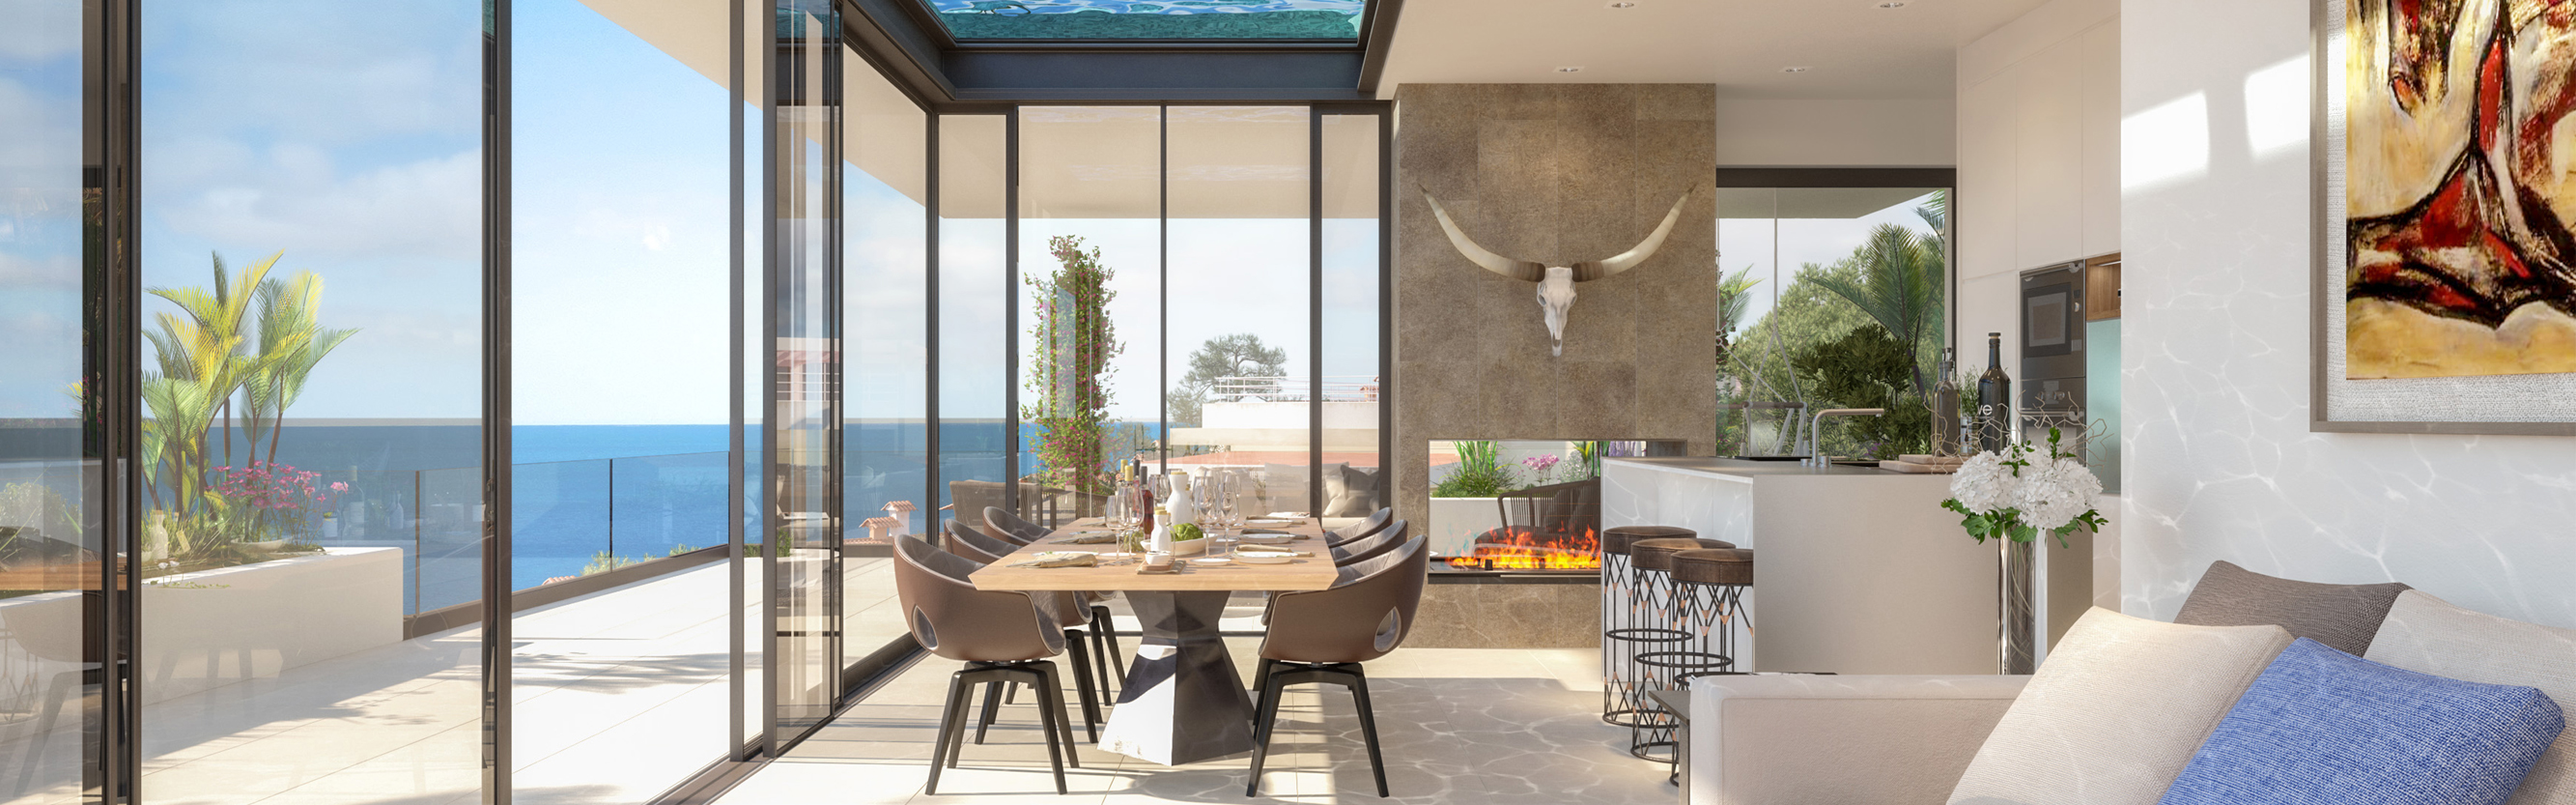 Balearen, Spanien - ELEVEN - Apartment Project in Cas Catalá, Mallorca